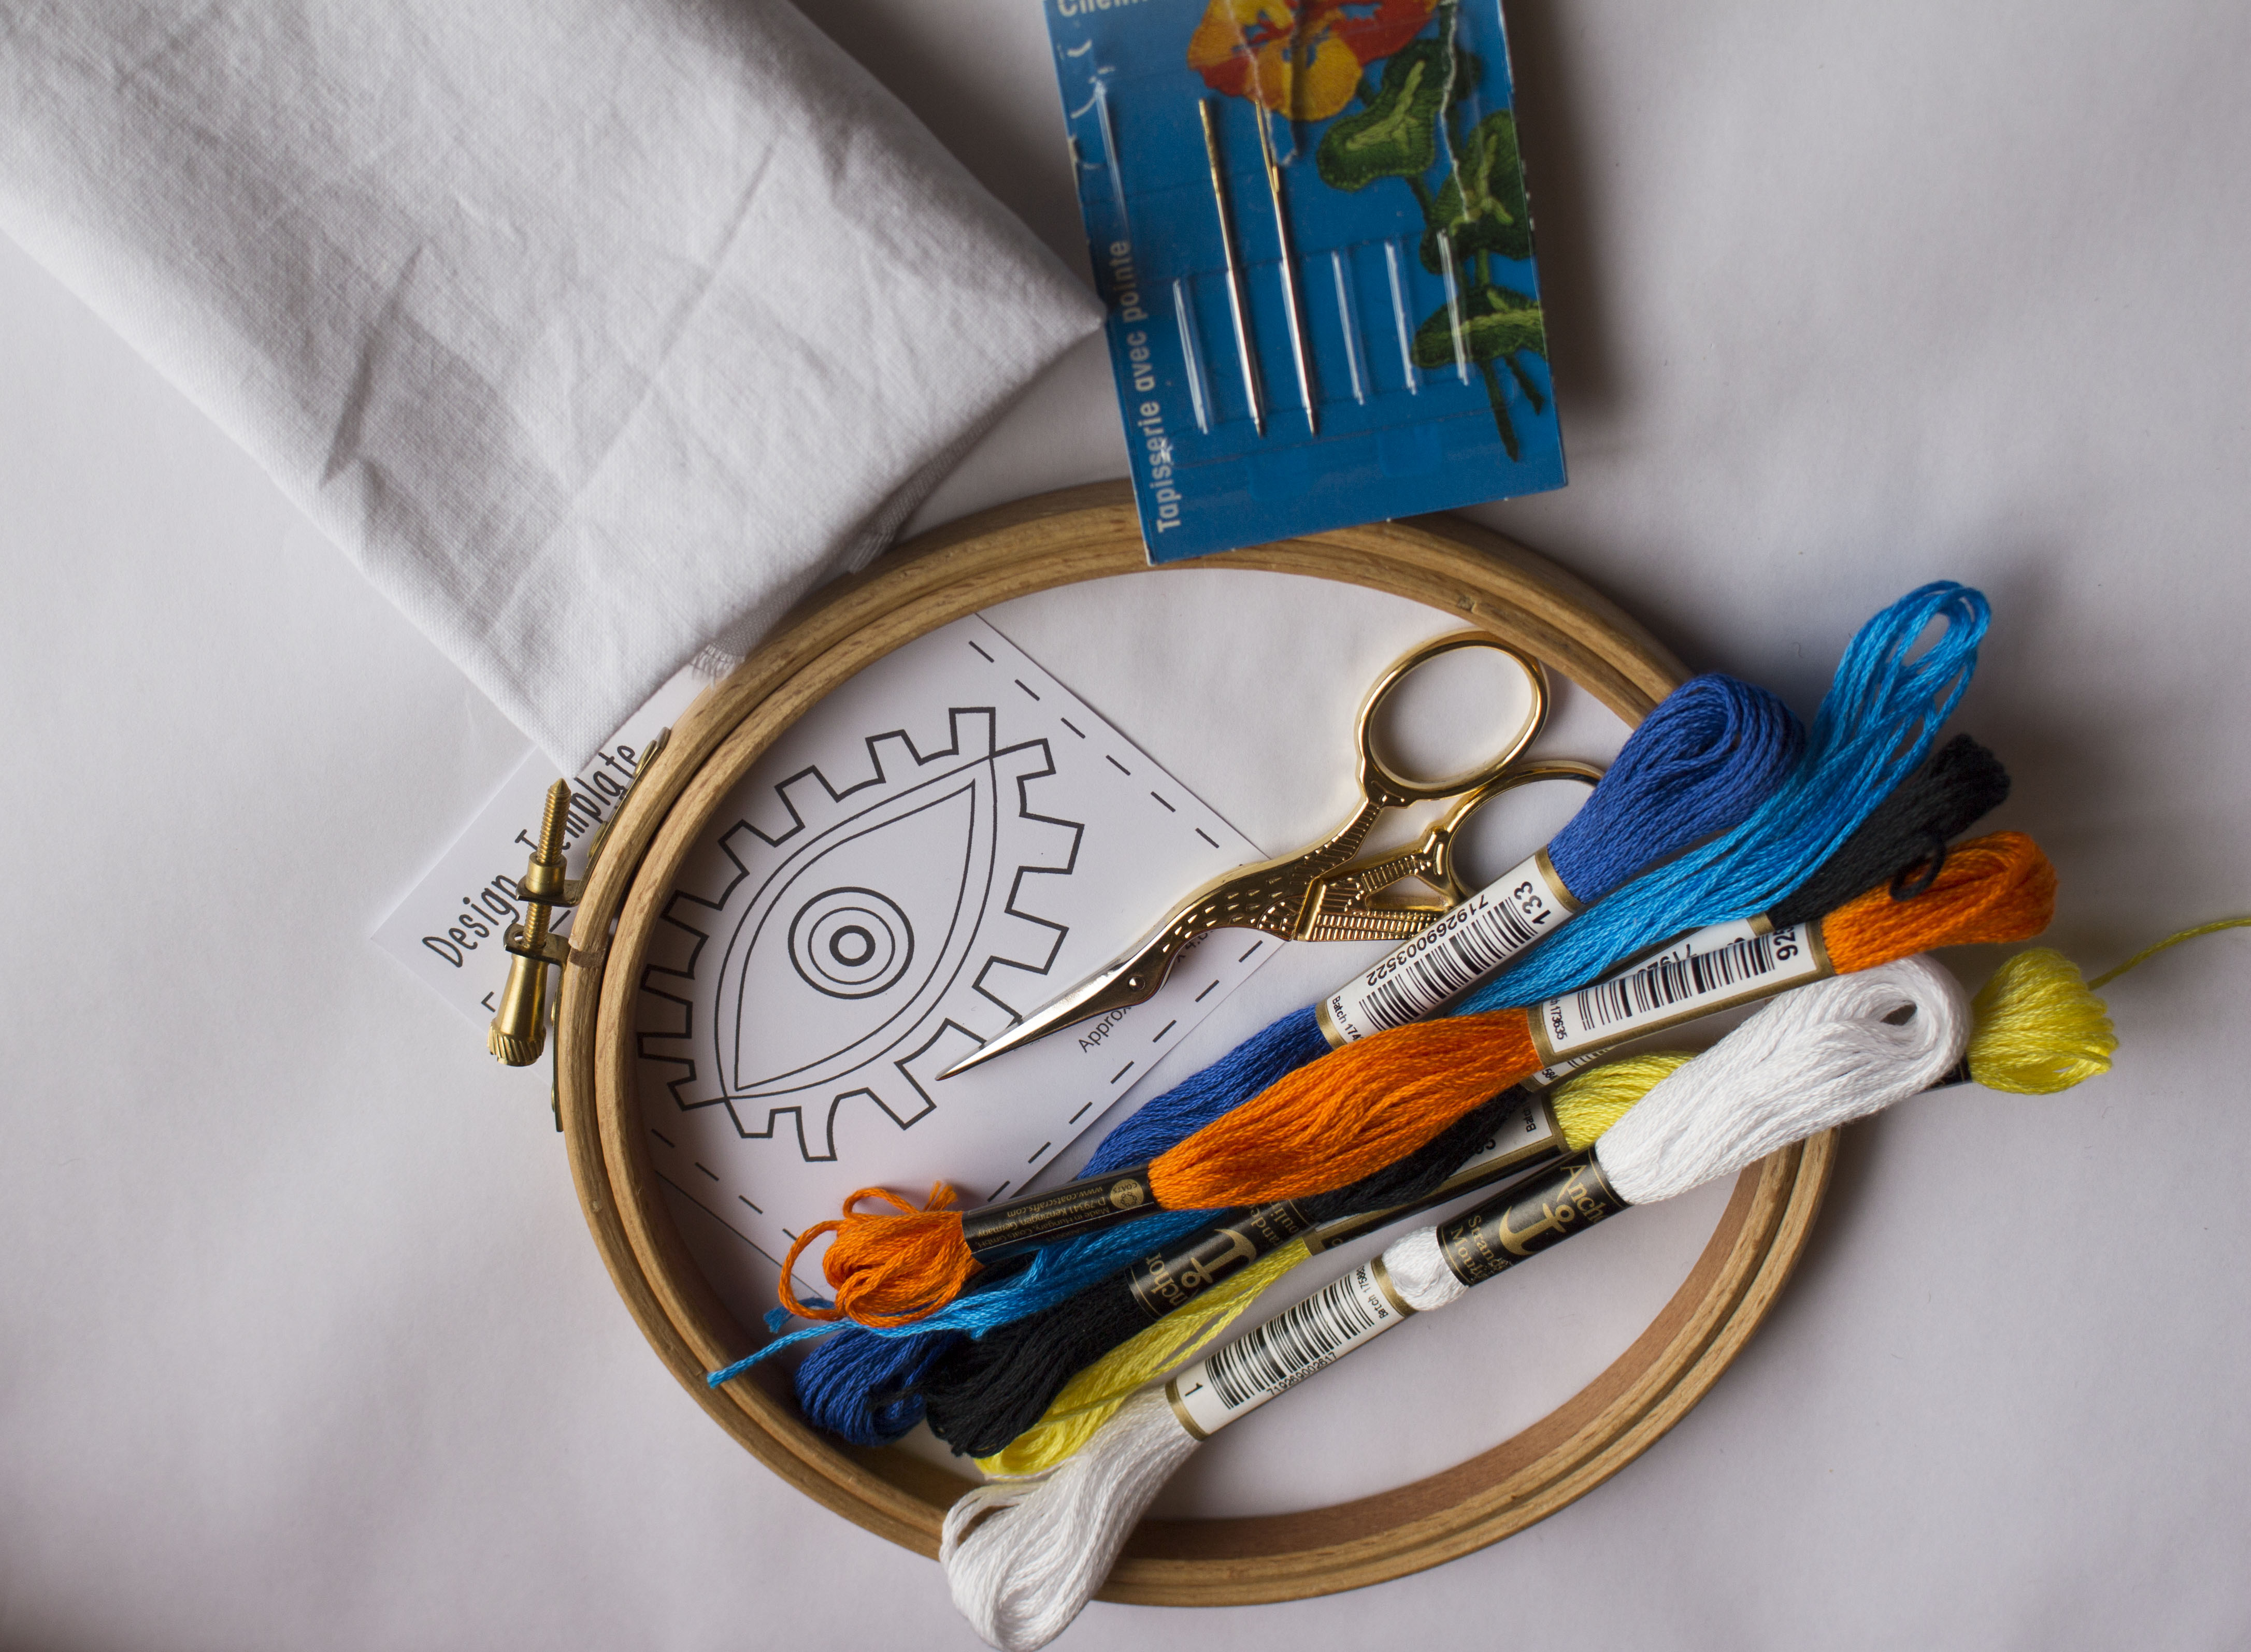 embroidery-tools-diy-how-to-evil-eye-embroidery-patch